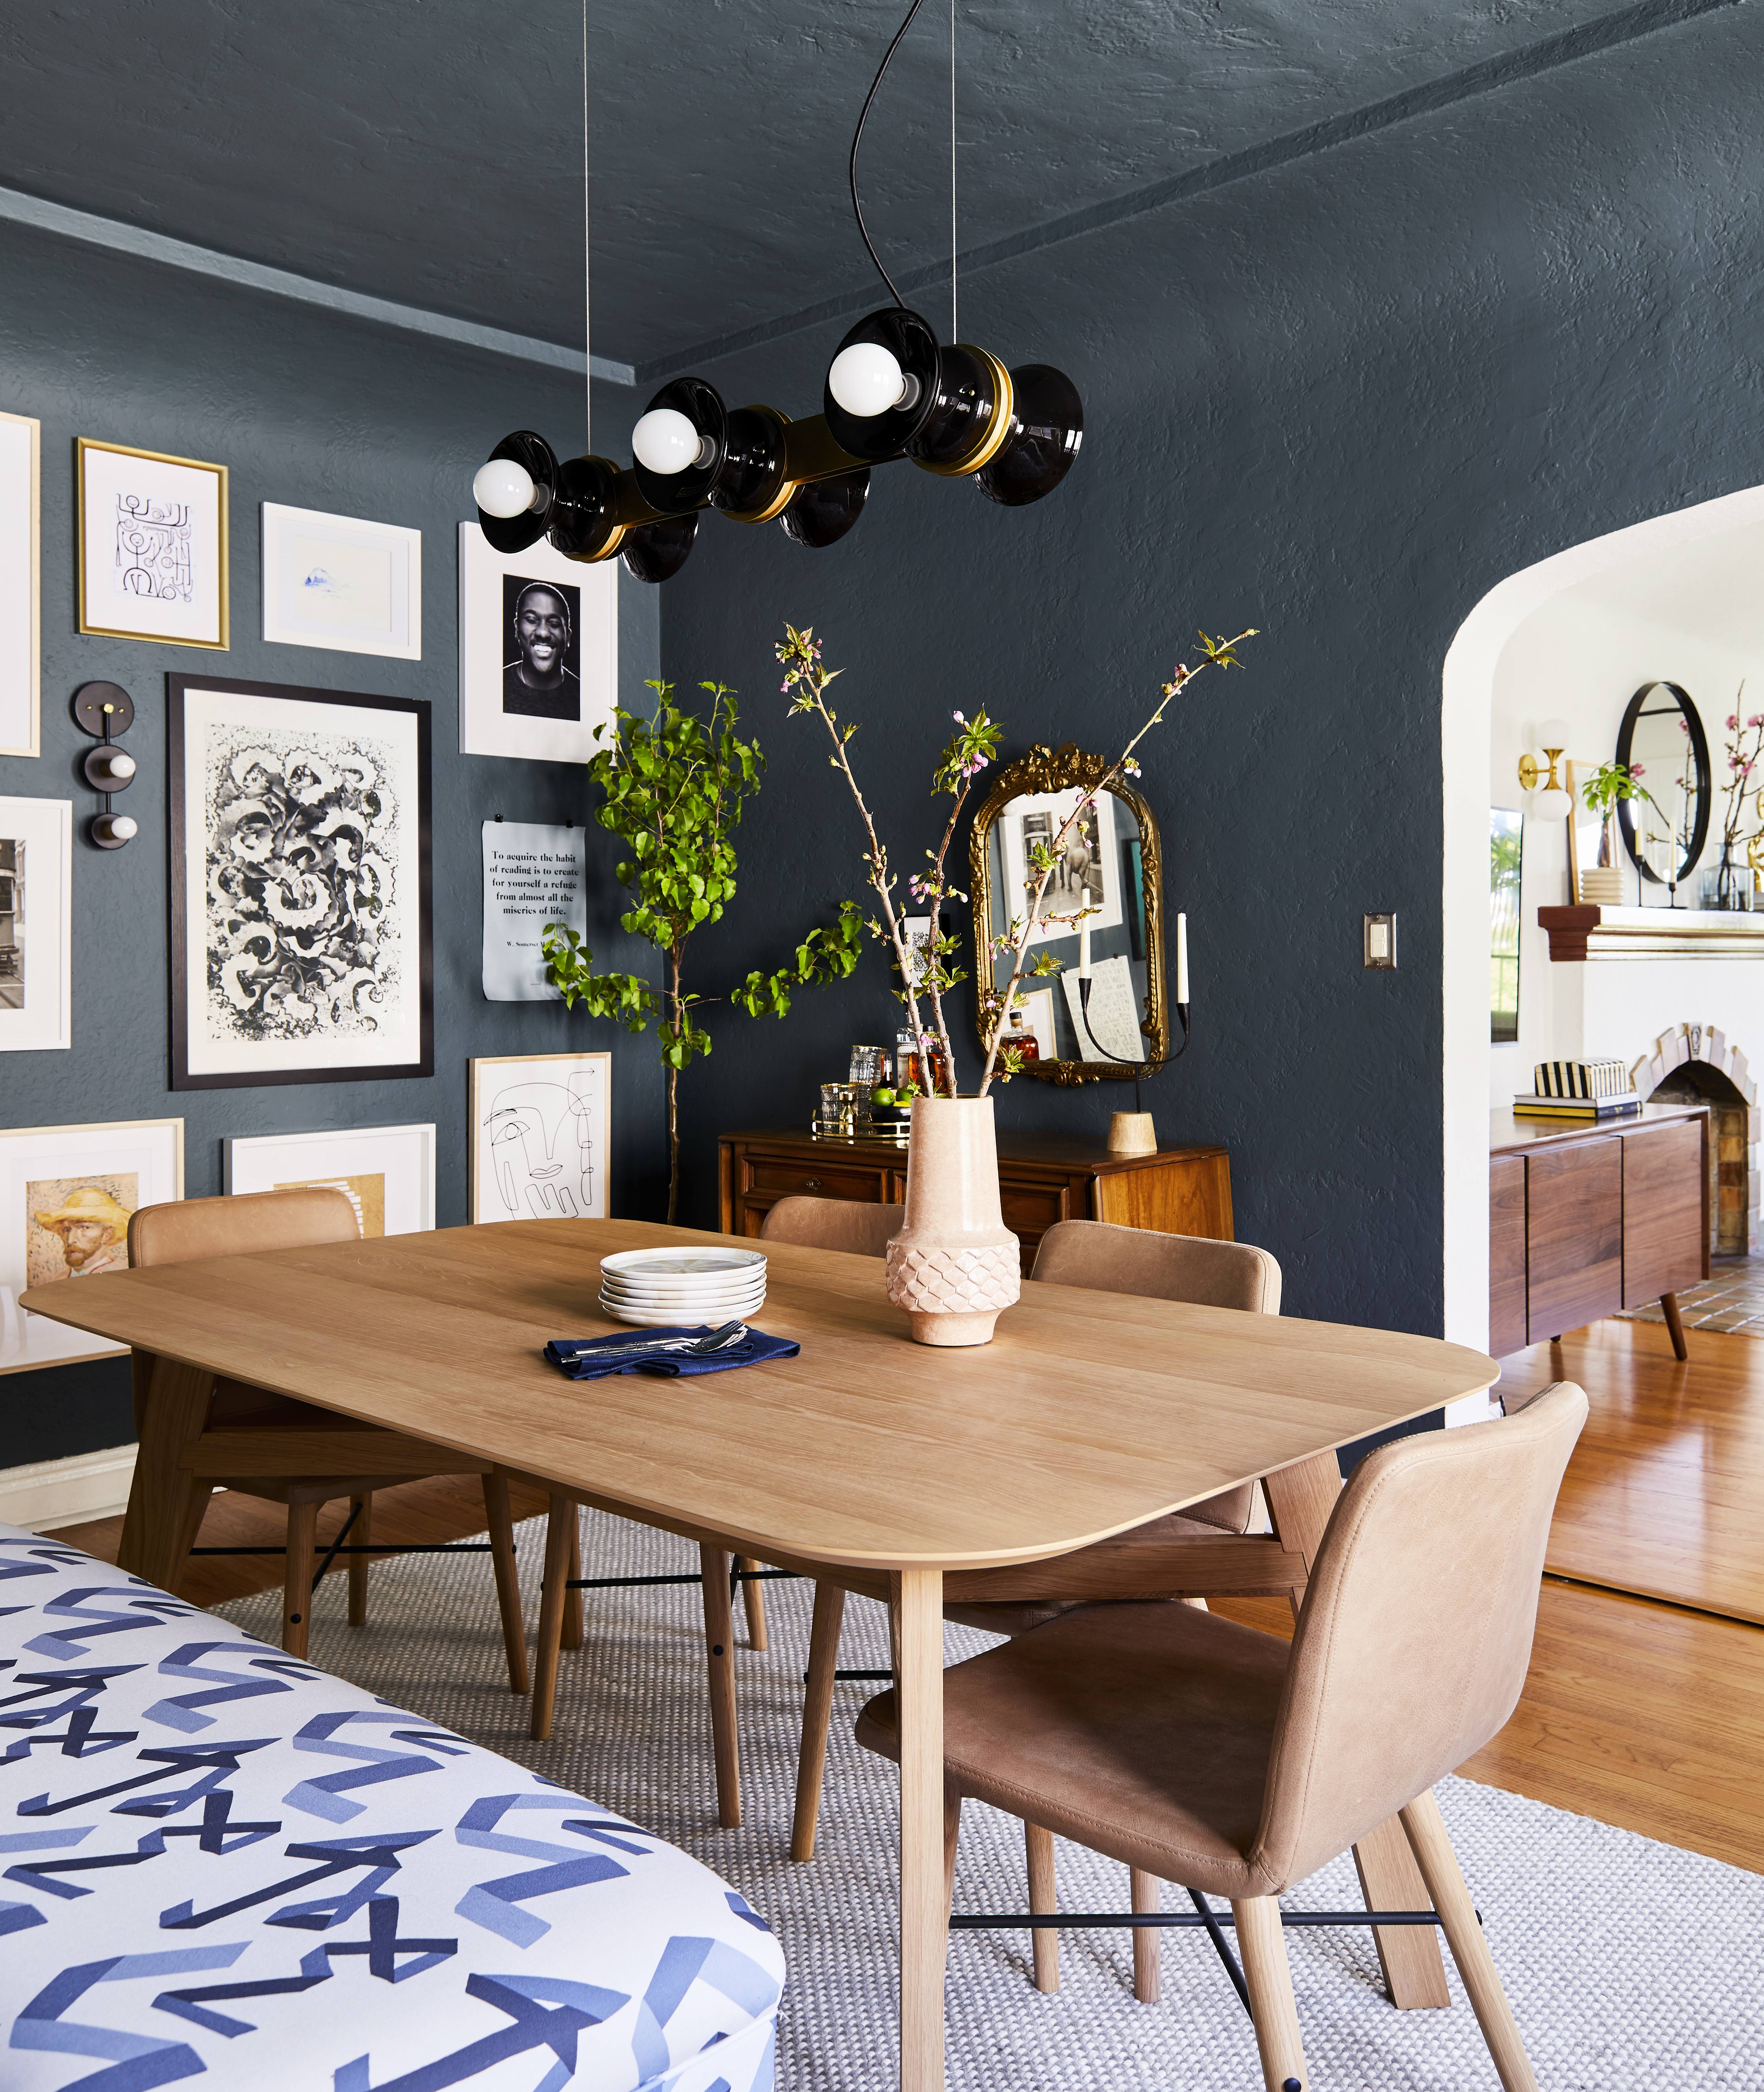 6 Sneaky Decor Ideas That Will Make a Dining Room Look More Expensive